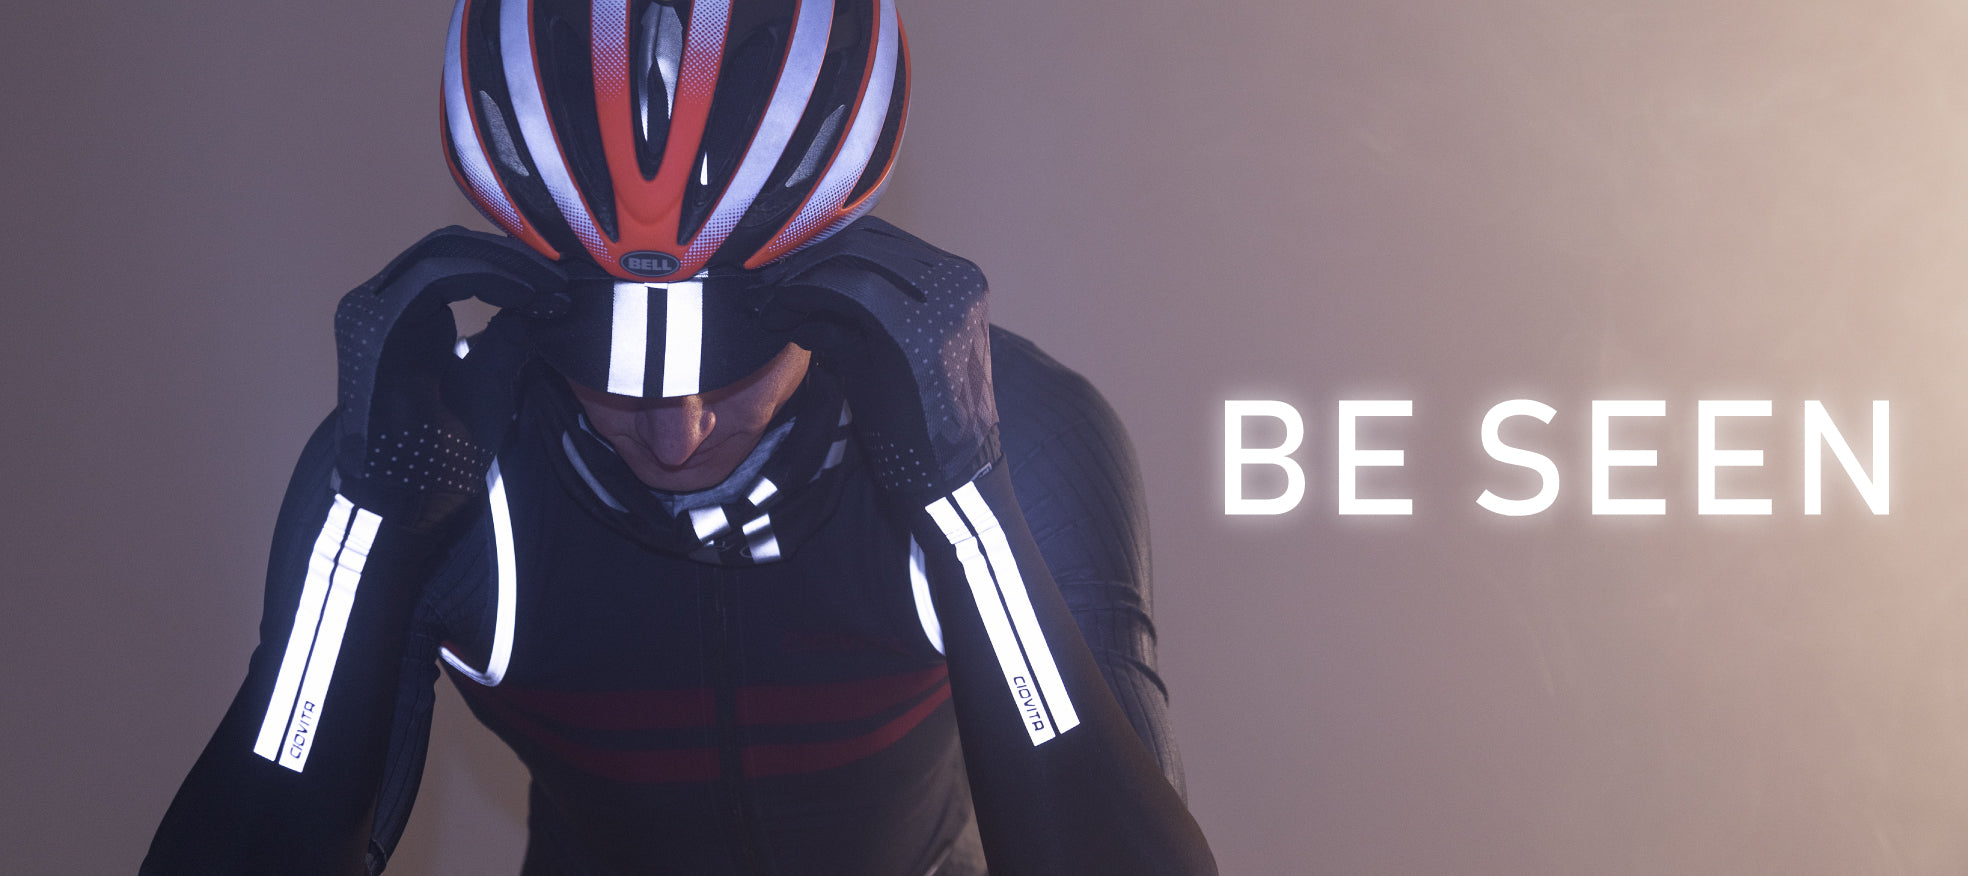 Be Seen with our Reflective Cycling Kit